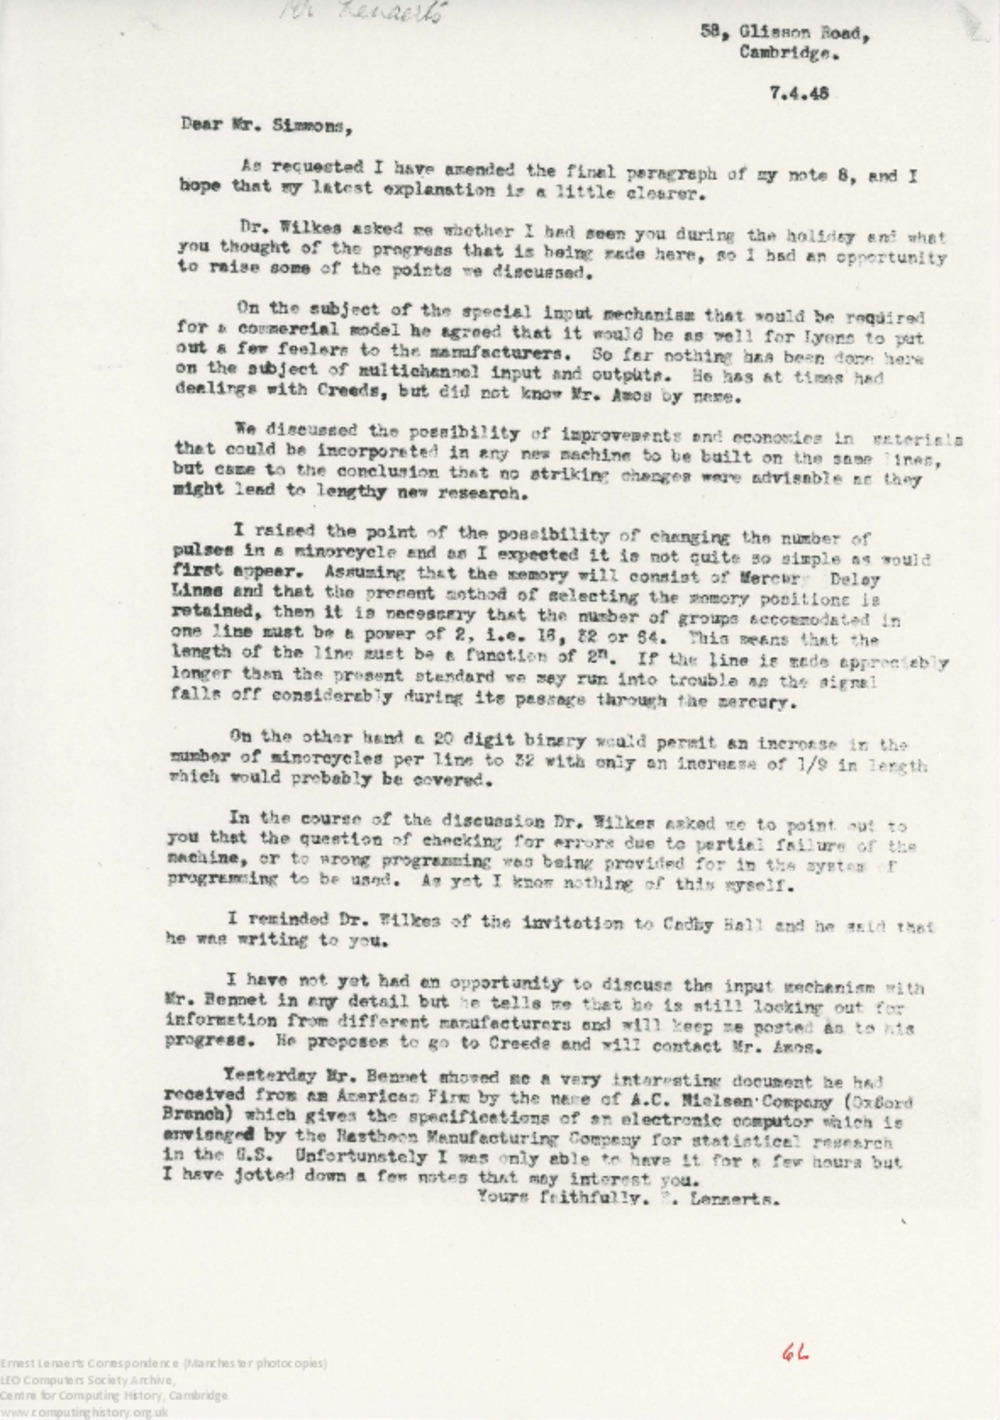 Article: 62891 Lenaerts reporting back from Cambridge, part 3 - Apr-May 1948